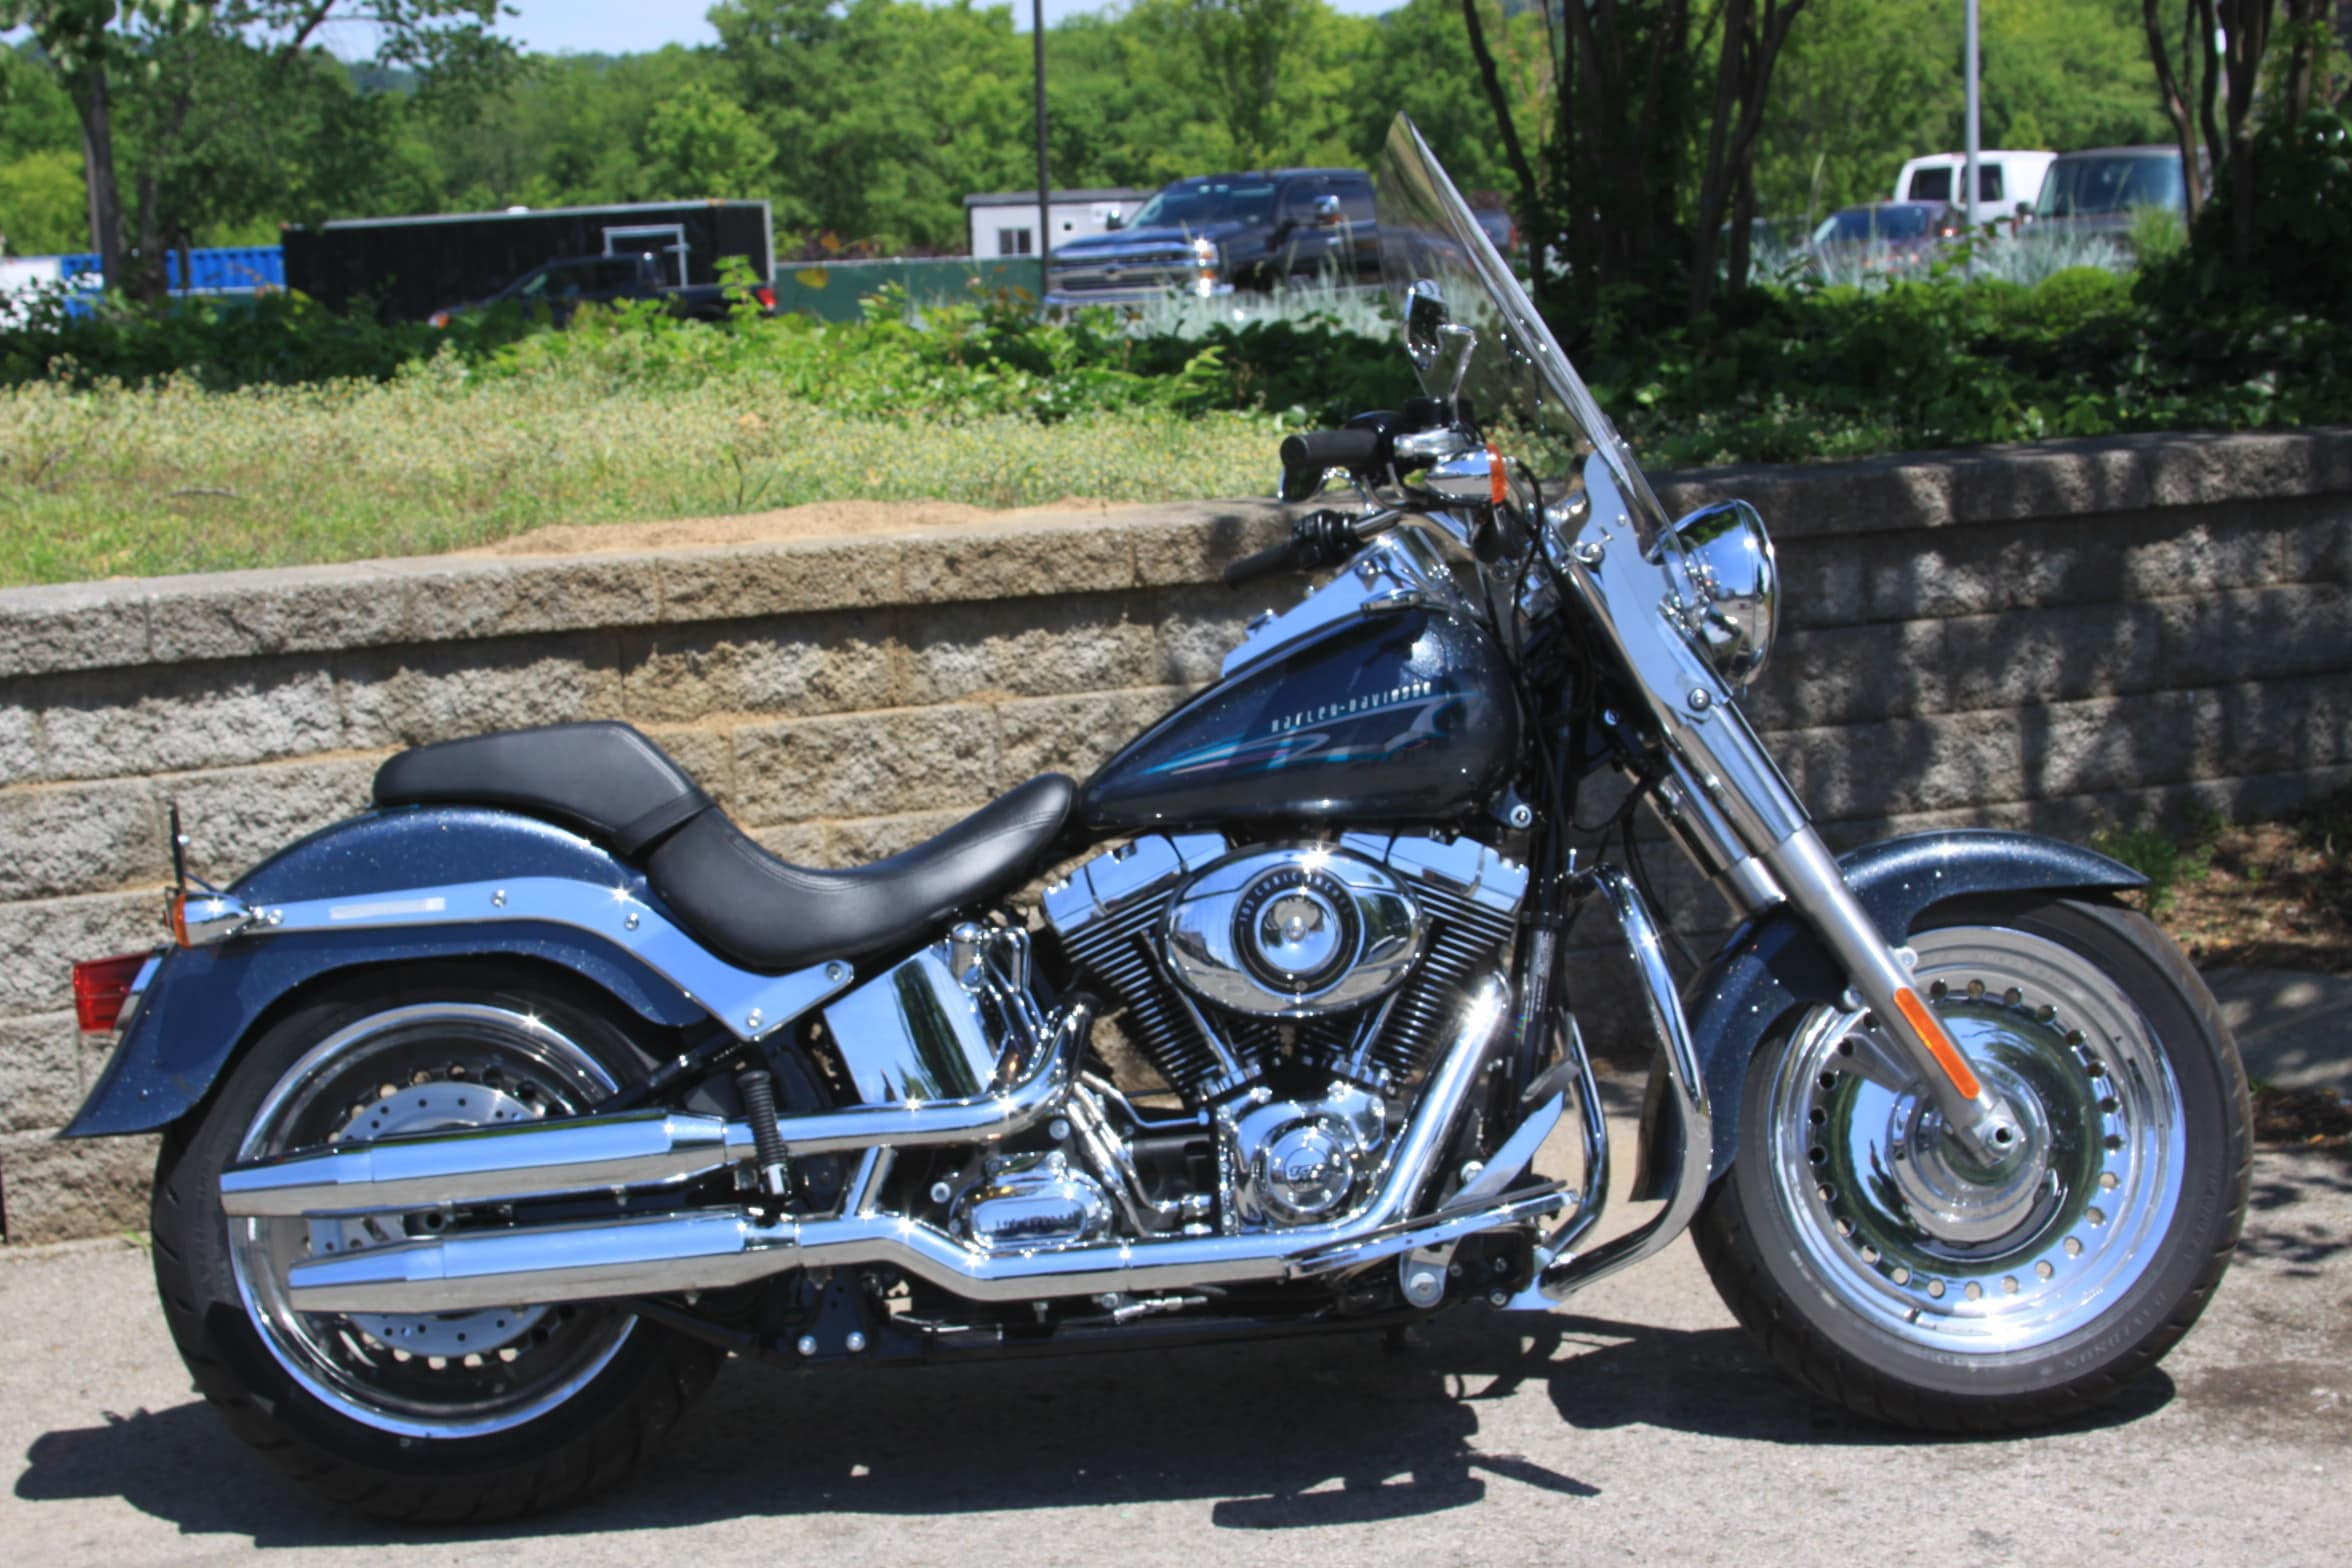 used 2015 harley davidson fat boy flstf for sale harley davidson of cool springs. Black Bedroom Furniture Sets. Home Design Ideas